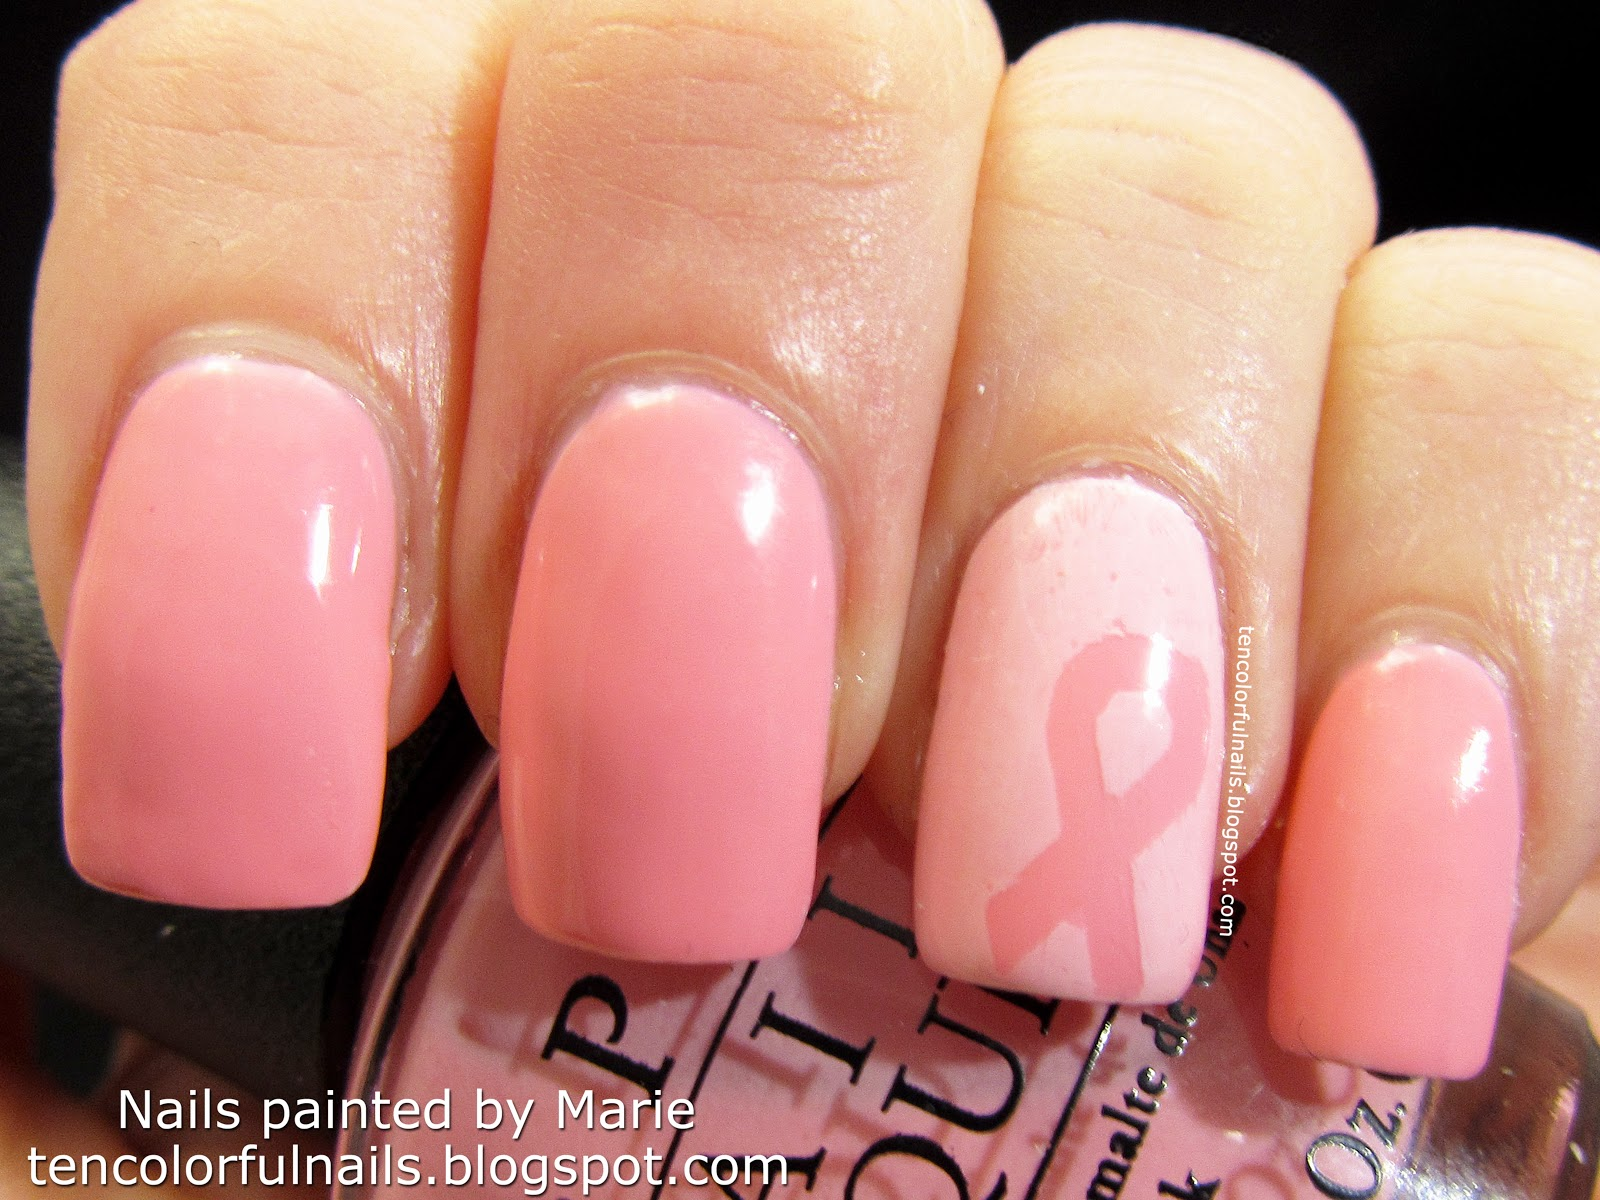 Ten Colorful Nails: Vellum Effect Nail Art for Breast Cancer ...